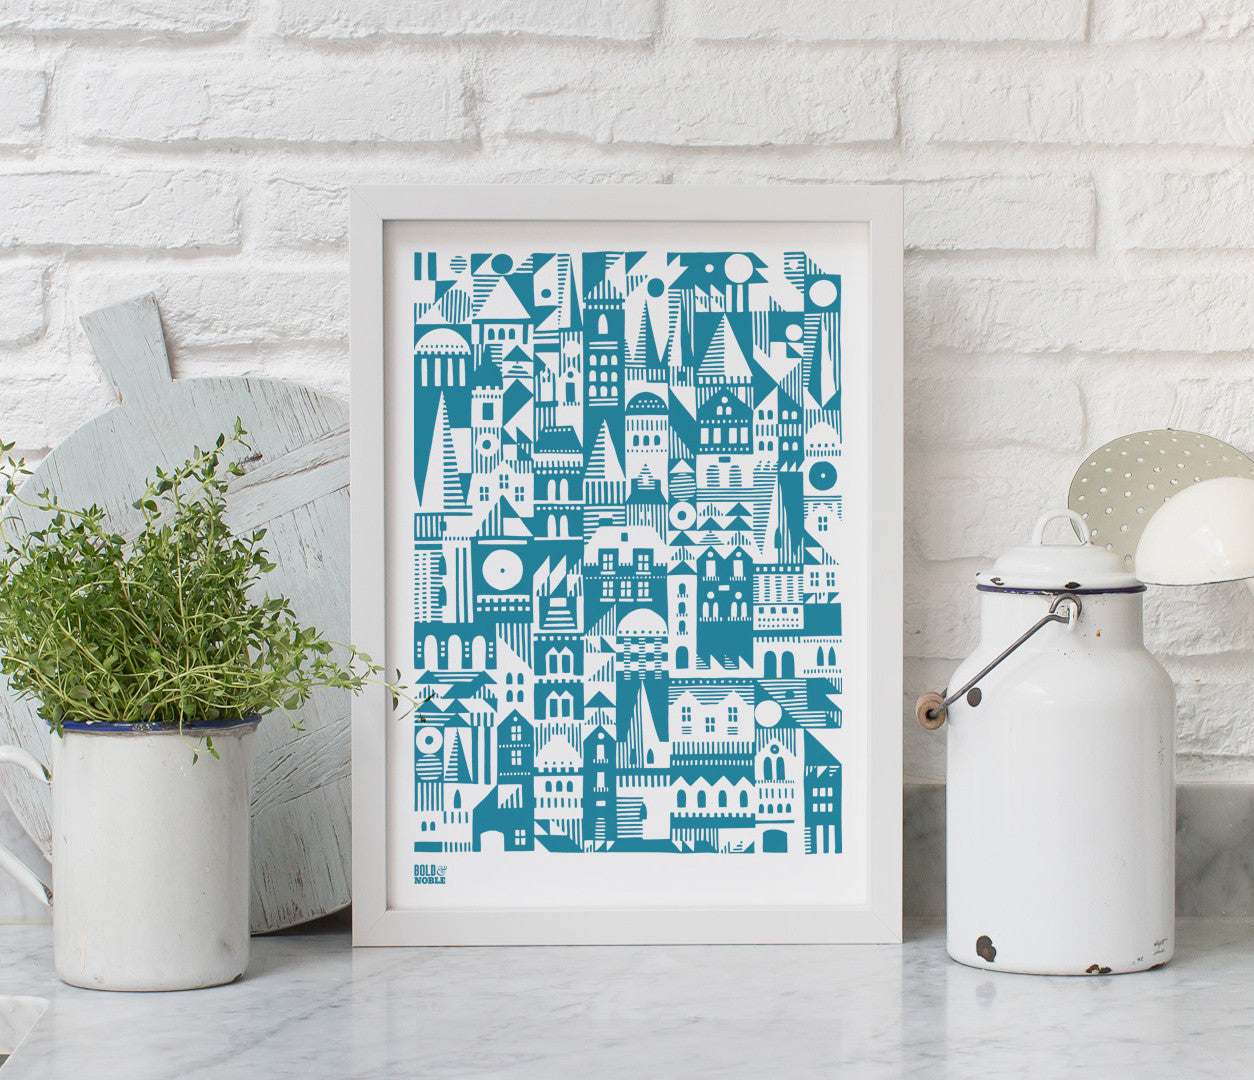 Wall art ideas, economical screen prints, Coming Home Geometric print in teal blue